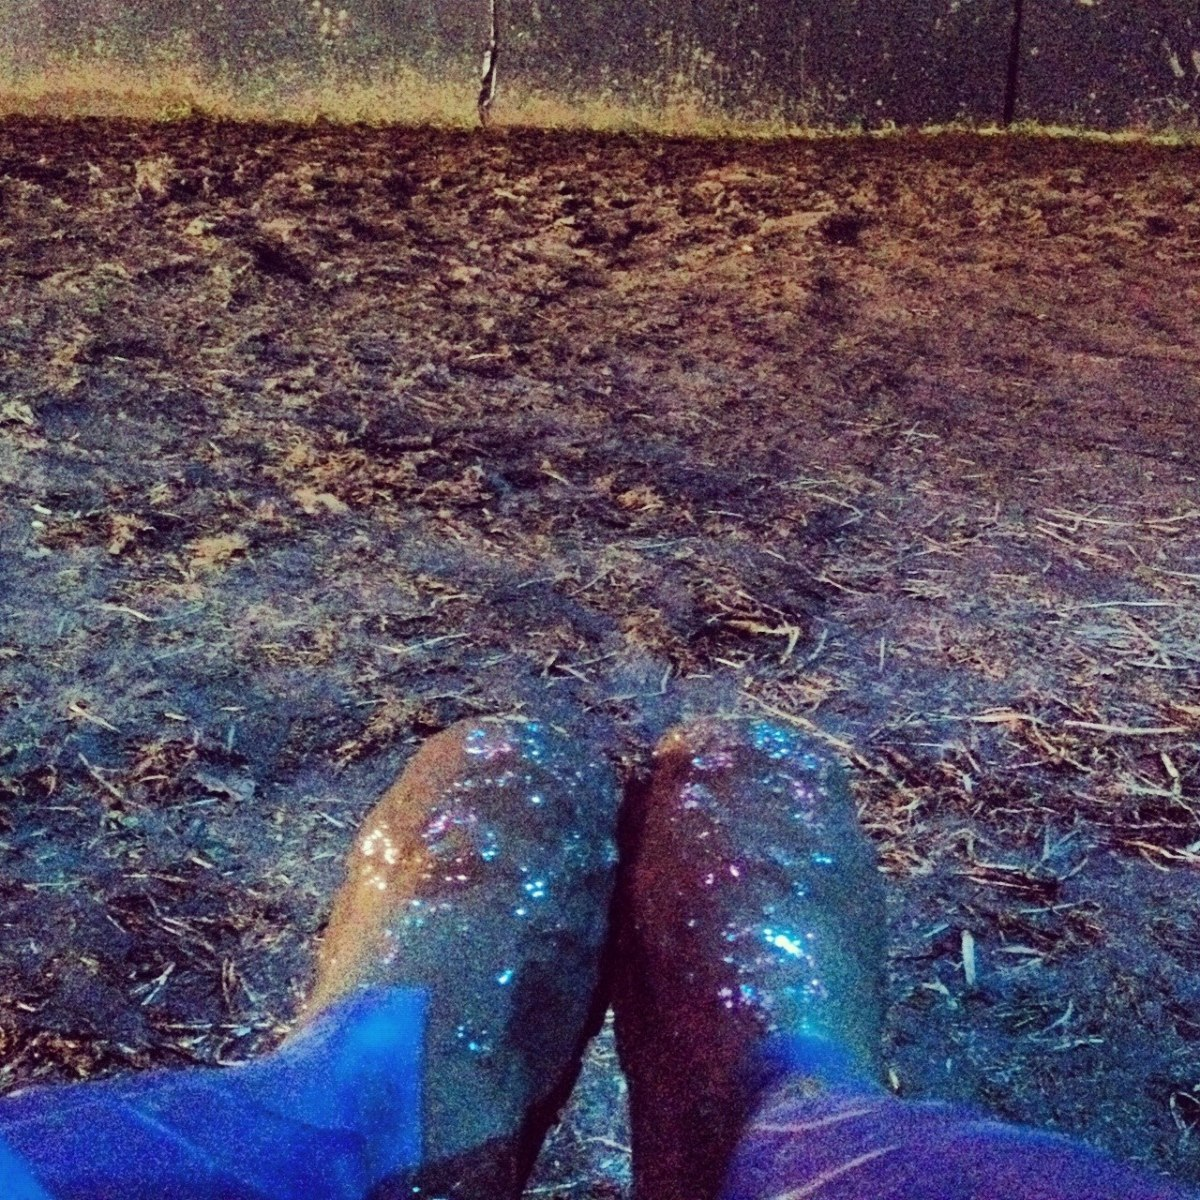 Muddy wellies - were a fixture at Greenbelt 2012